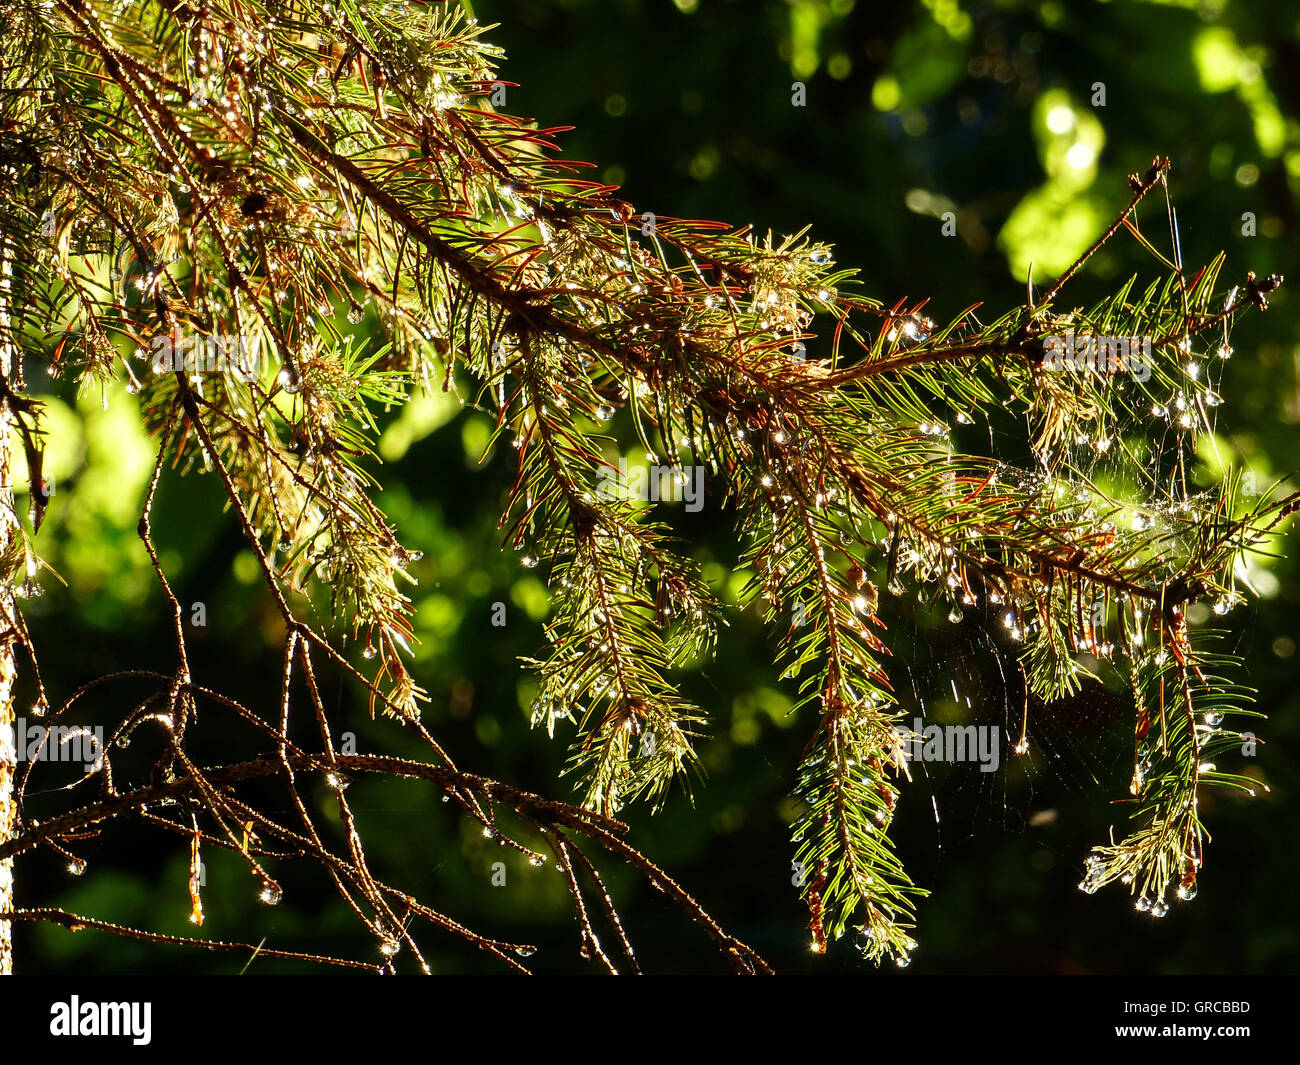 Spruce Branch With Glistening Dewdrops - Stock Image